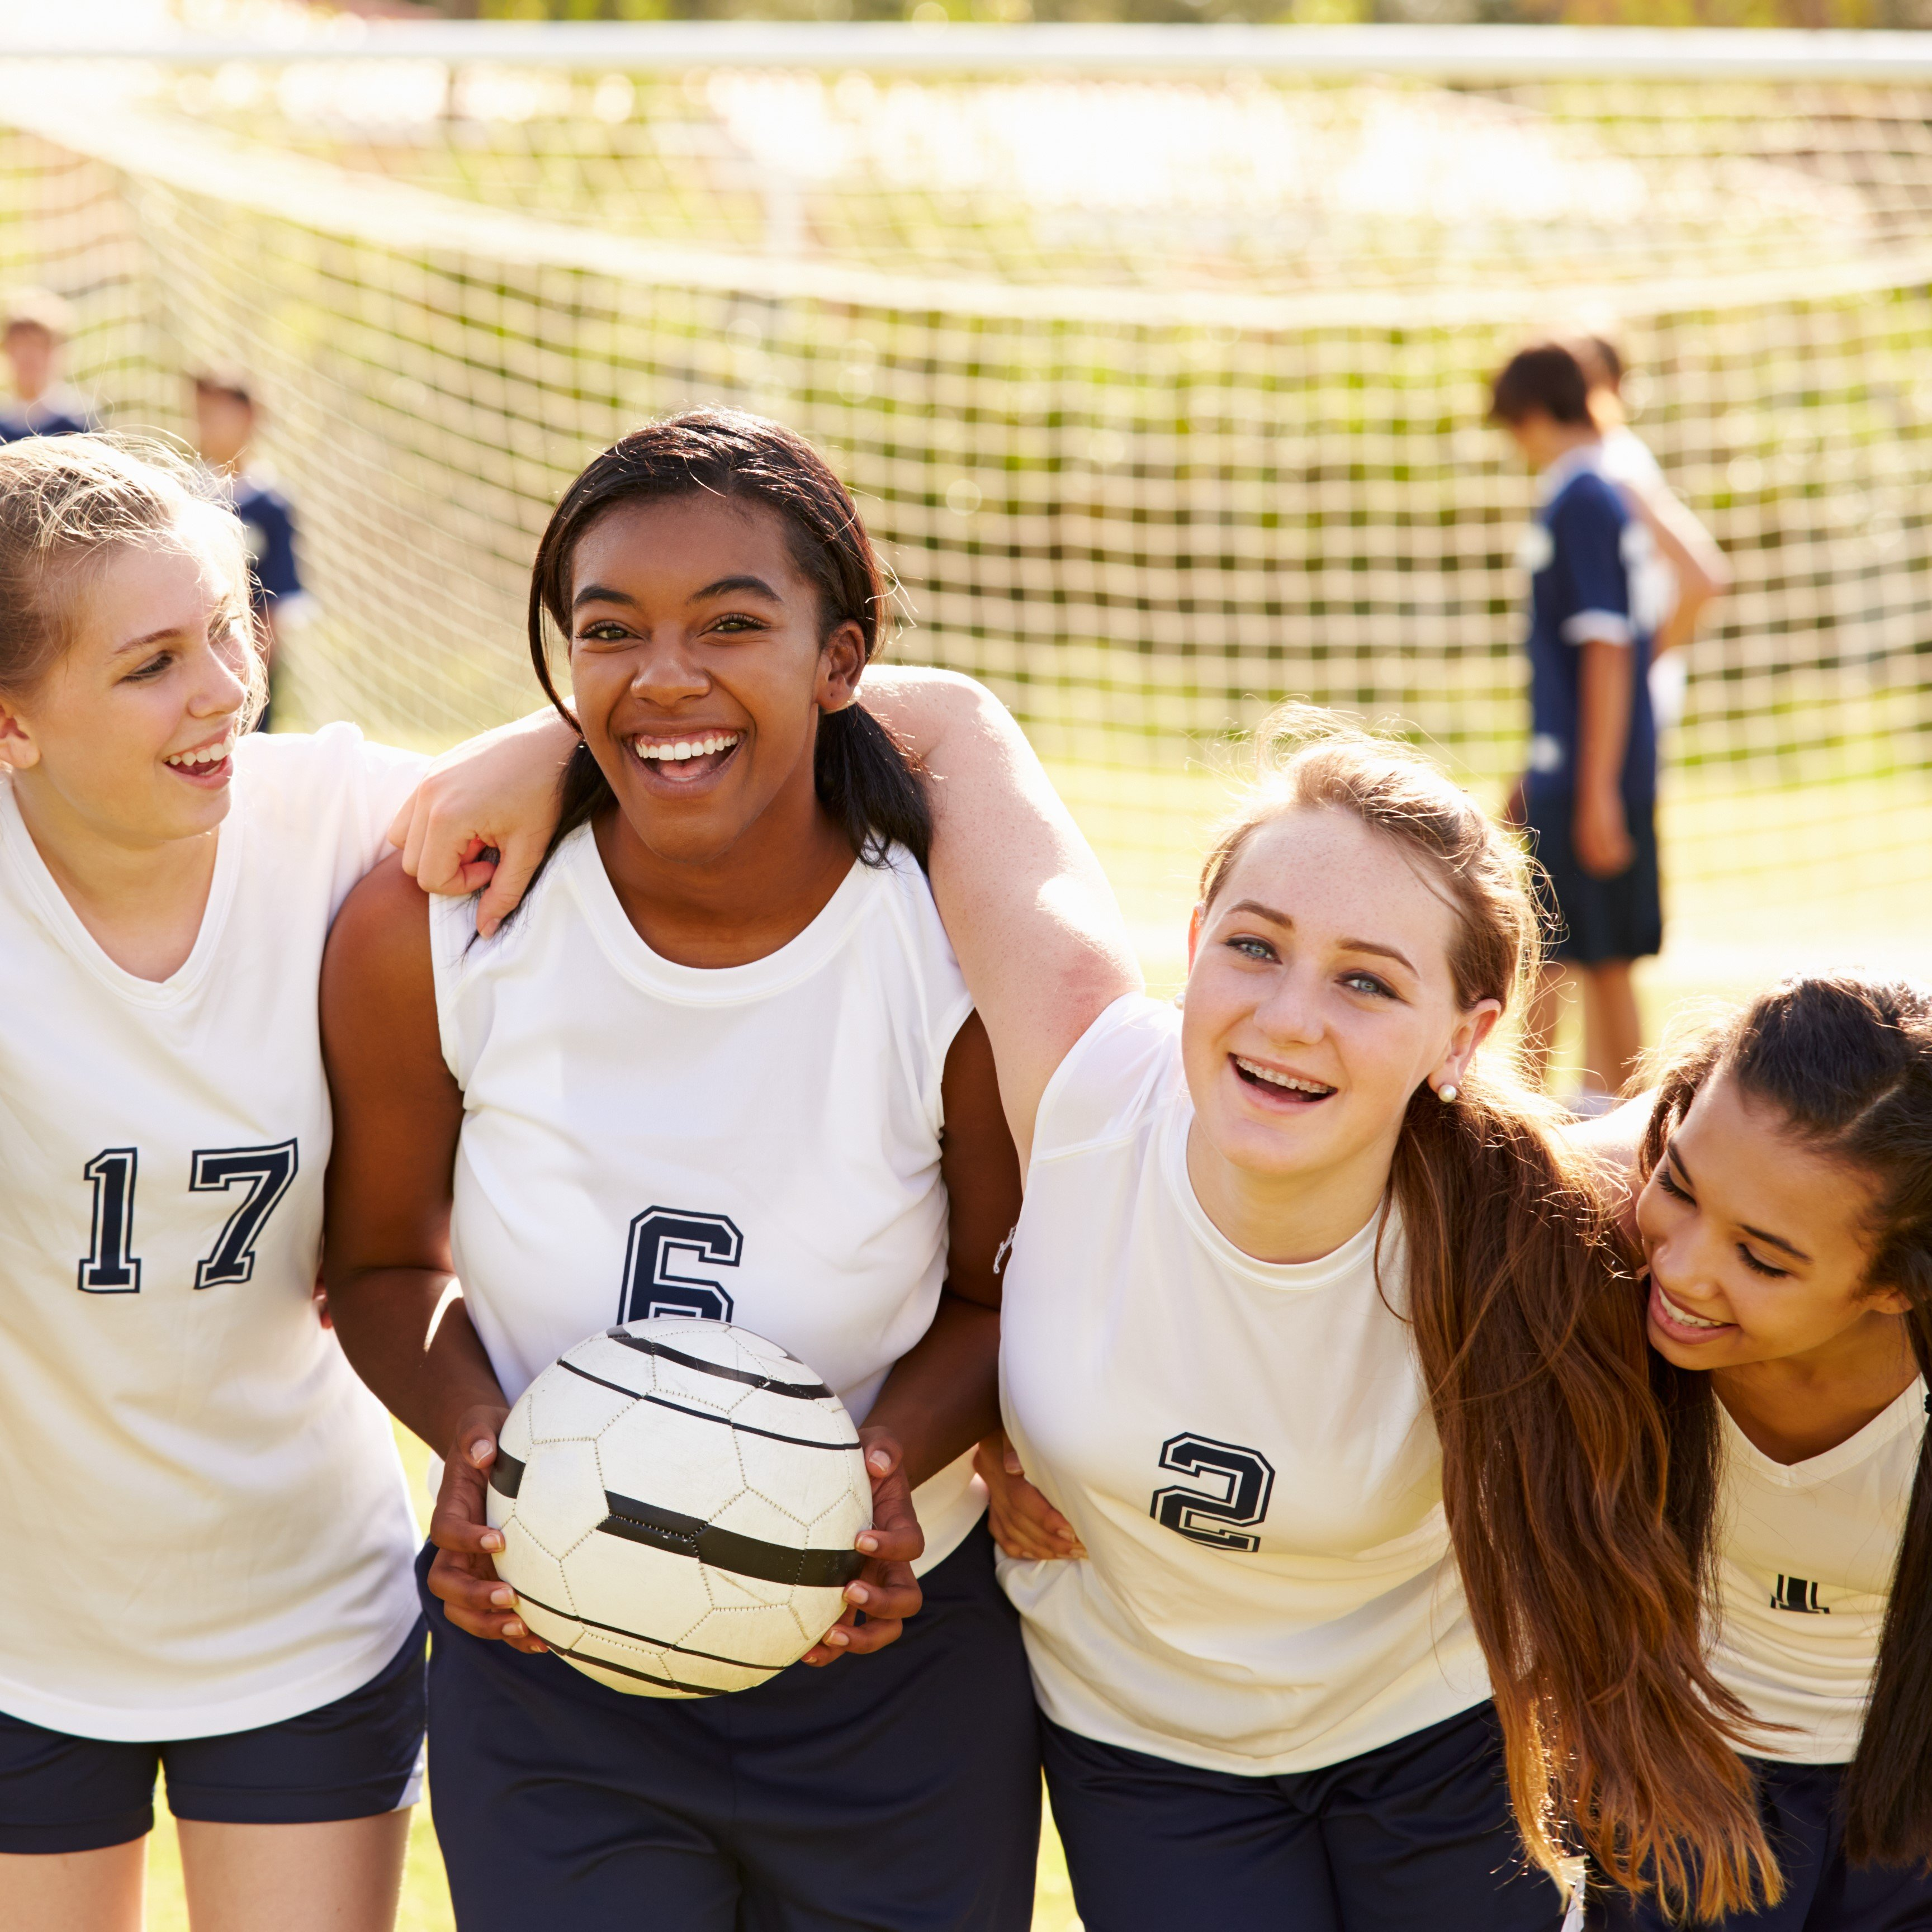 Puberty - Young girls' soccer team